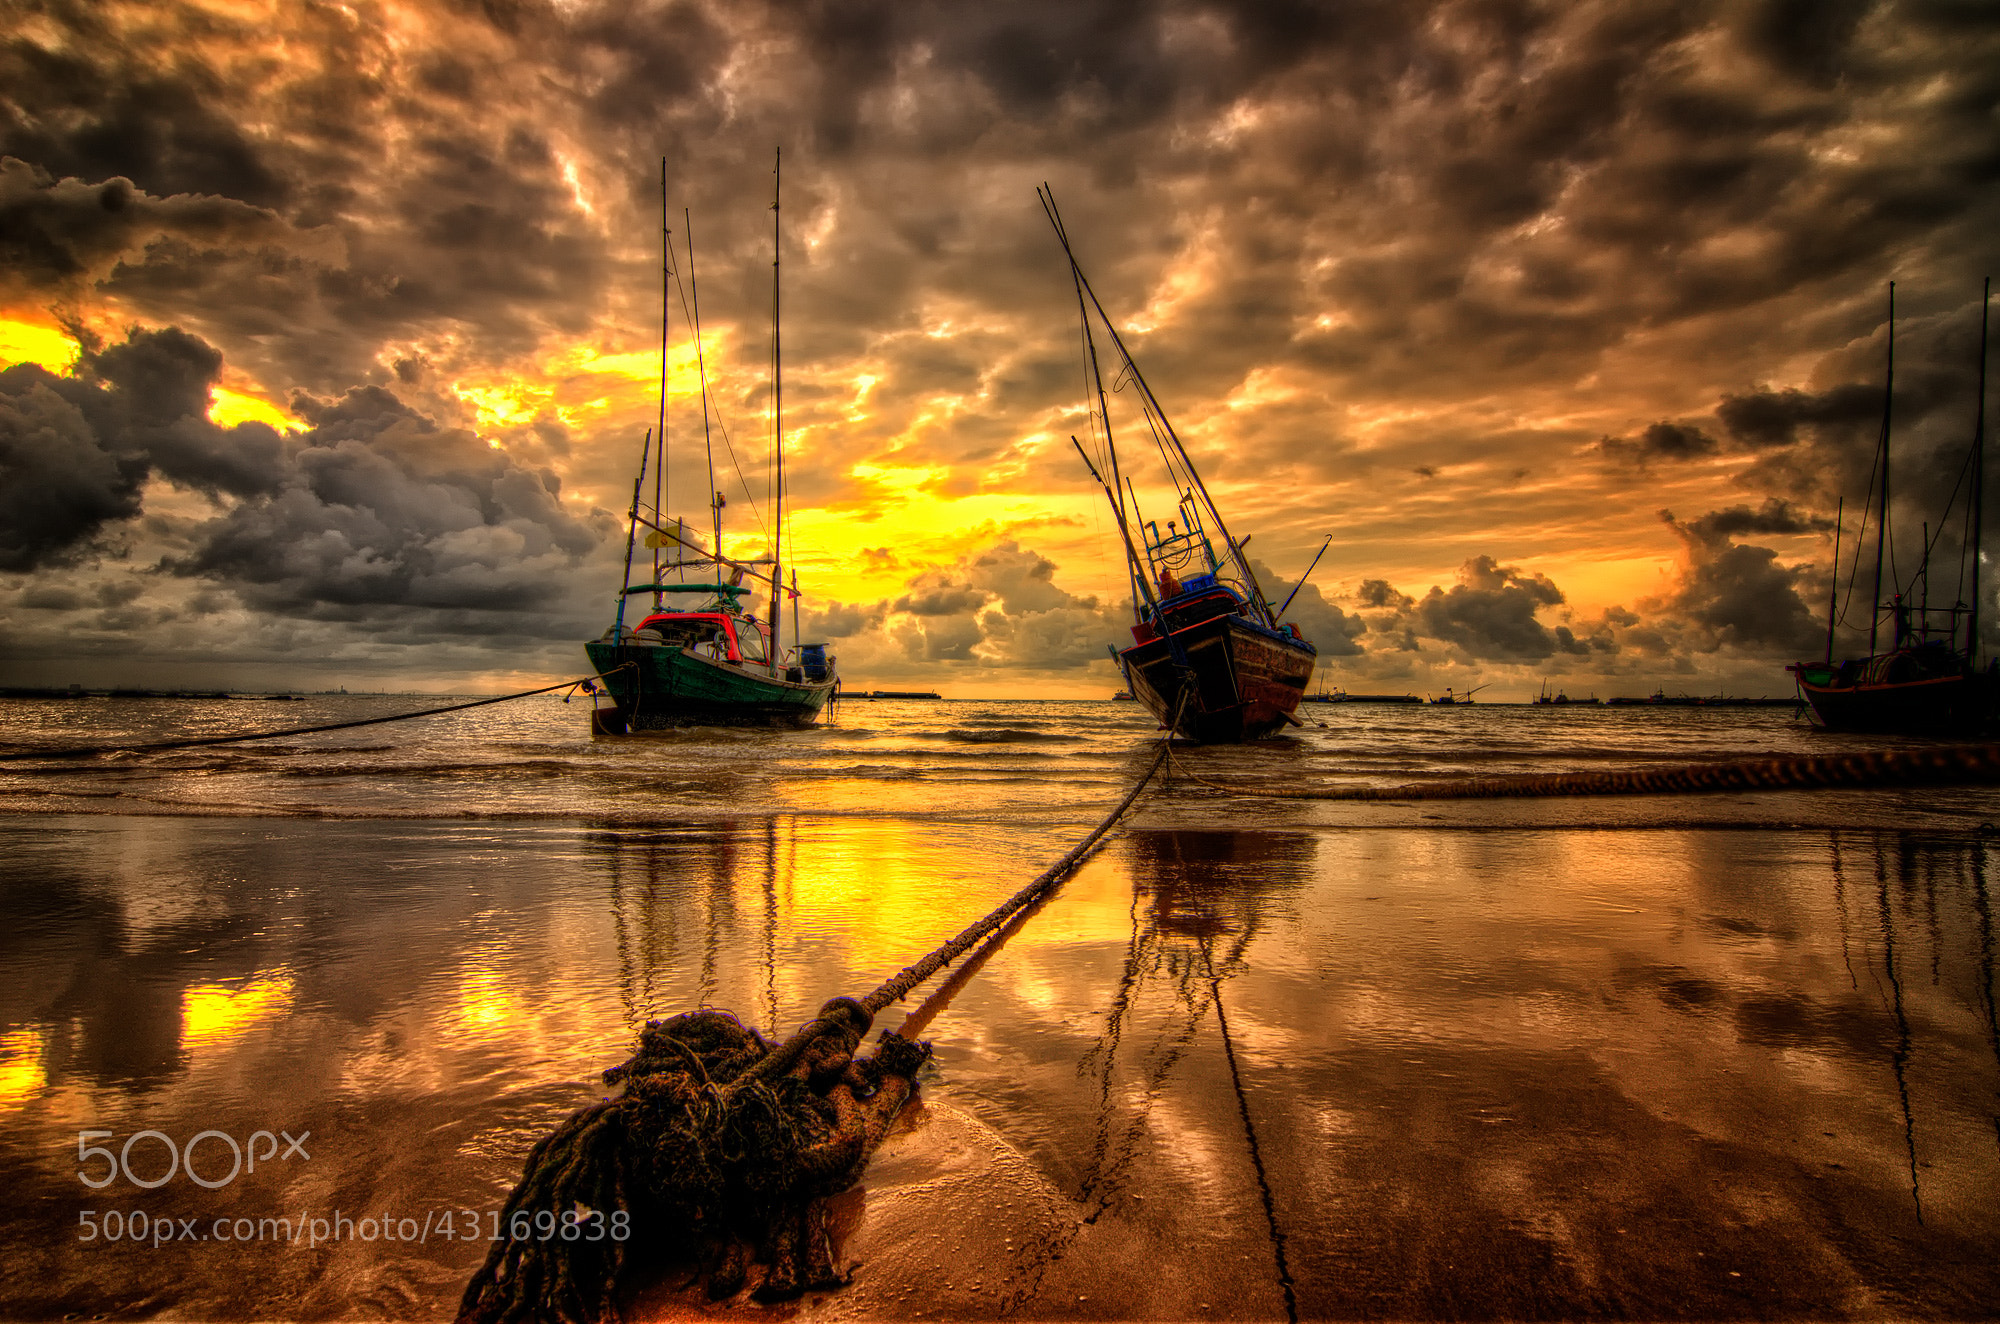 Photograph HDR by Peerasith Chaisanit on 500px